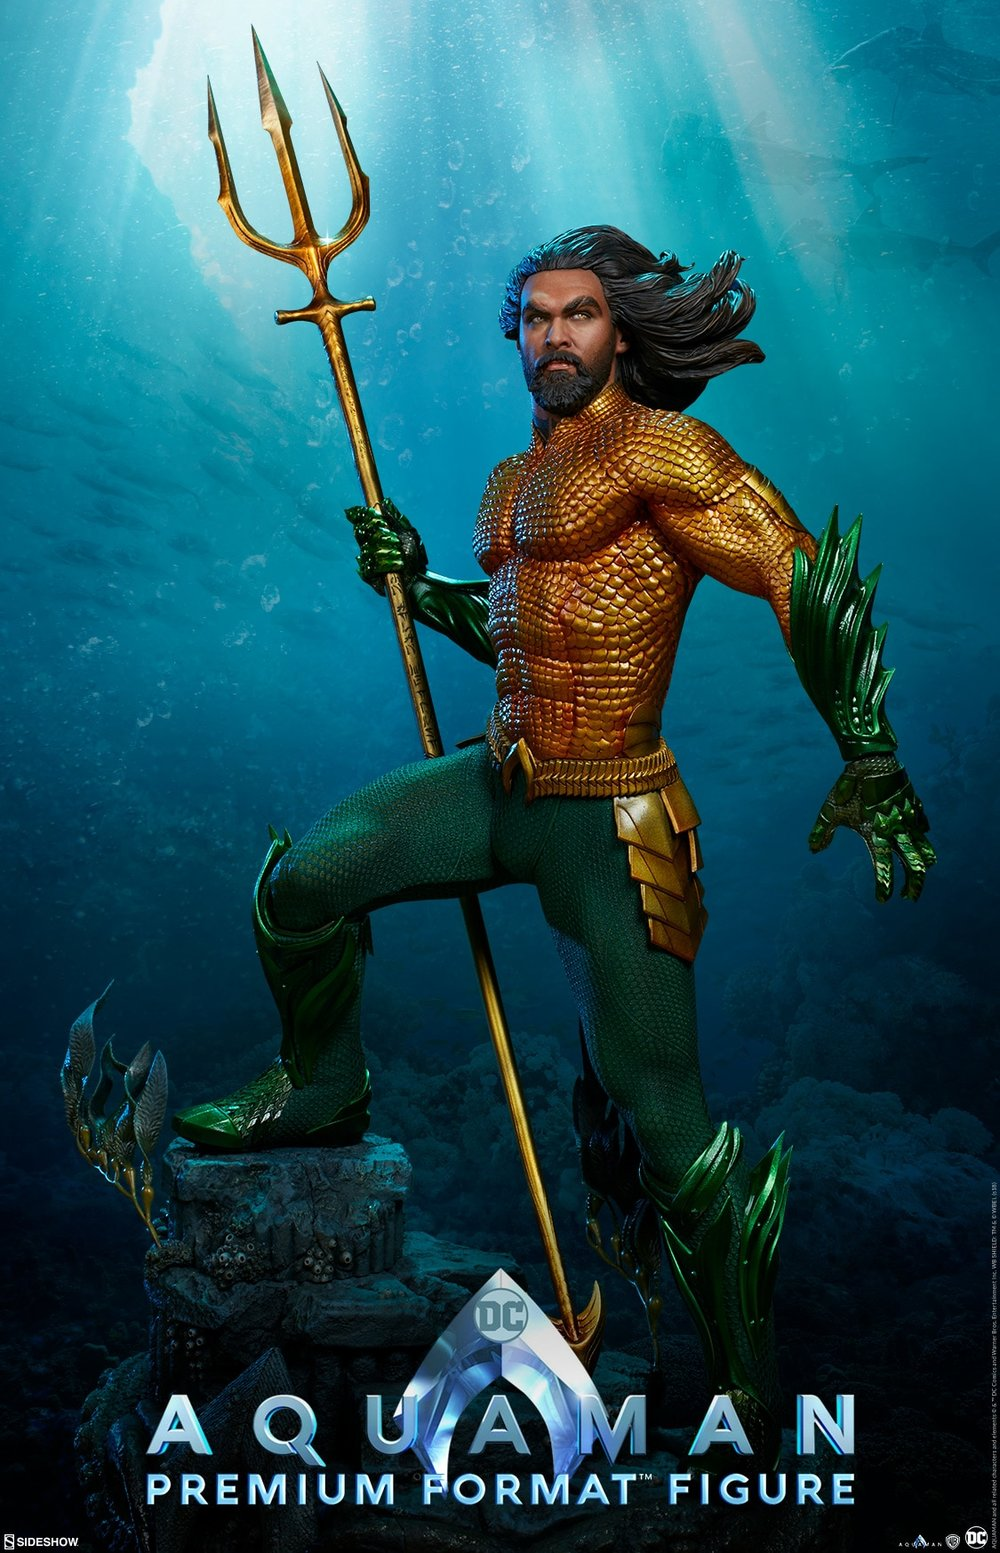 check-out-this-premium-format-aquaman-figure-from-sideshow-collectibles2